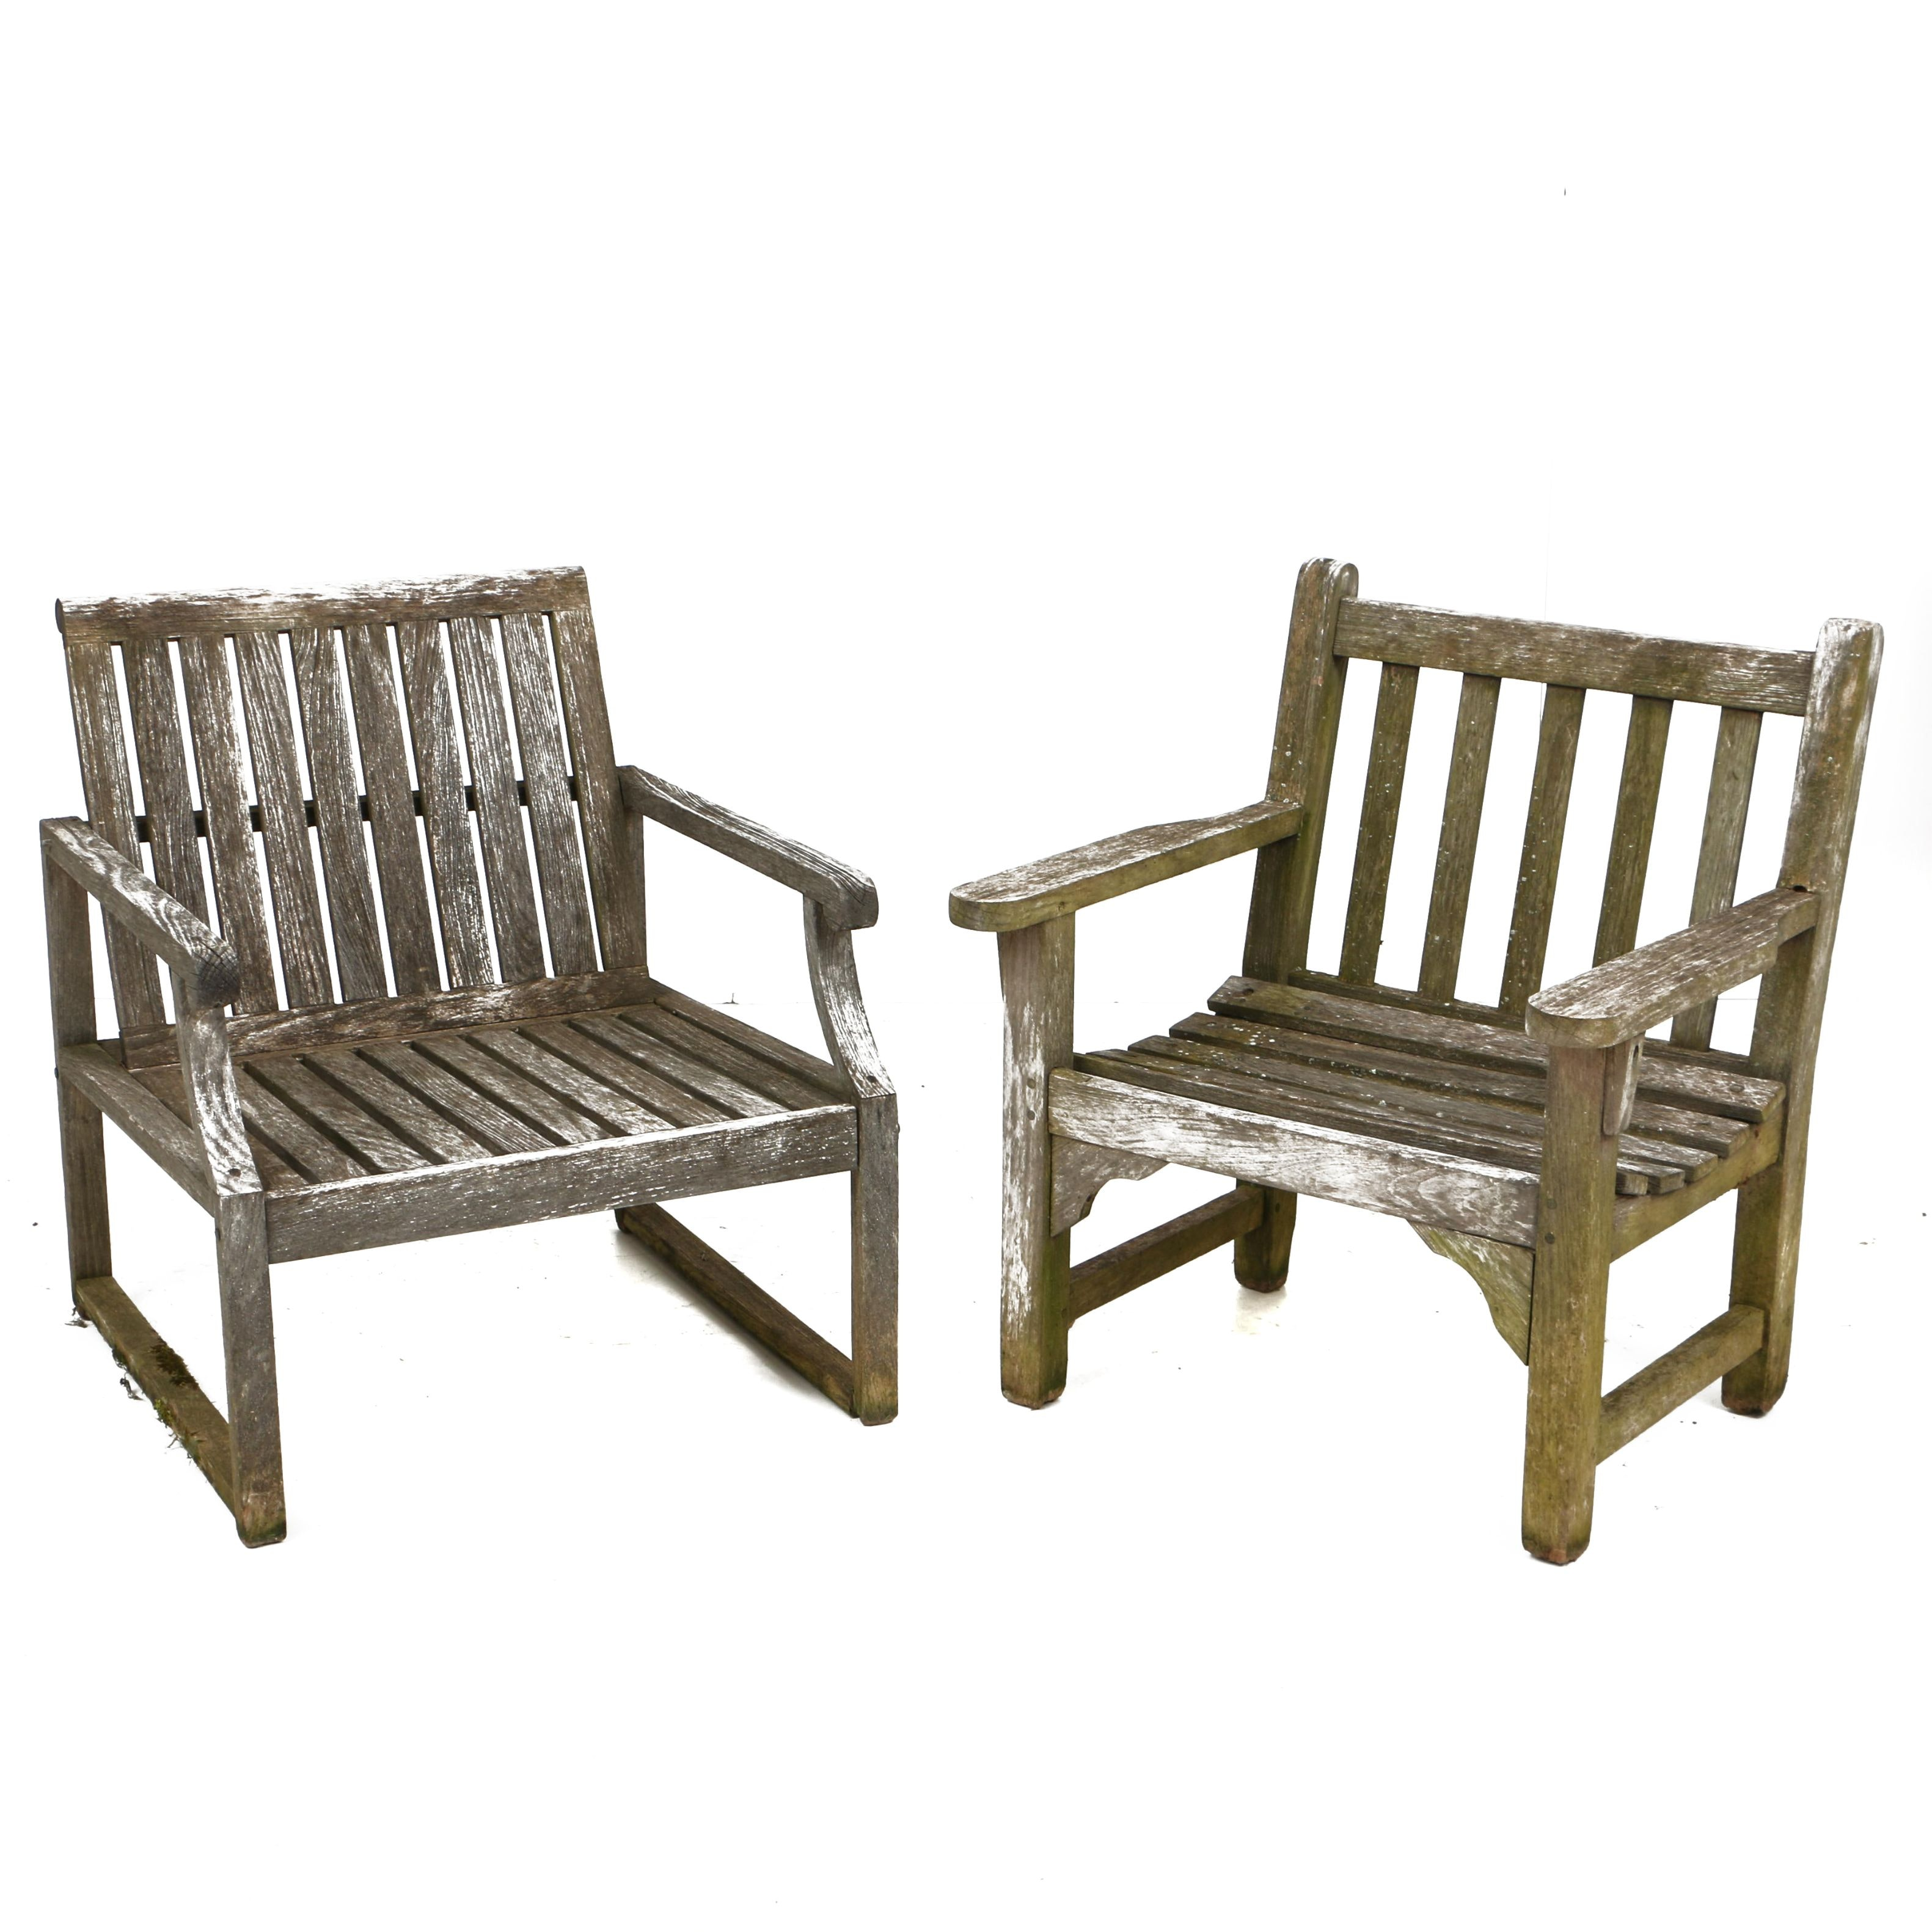 Teak Patio Armchairs, Including Smith & Hawken